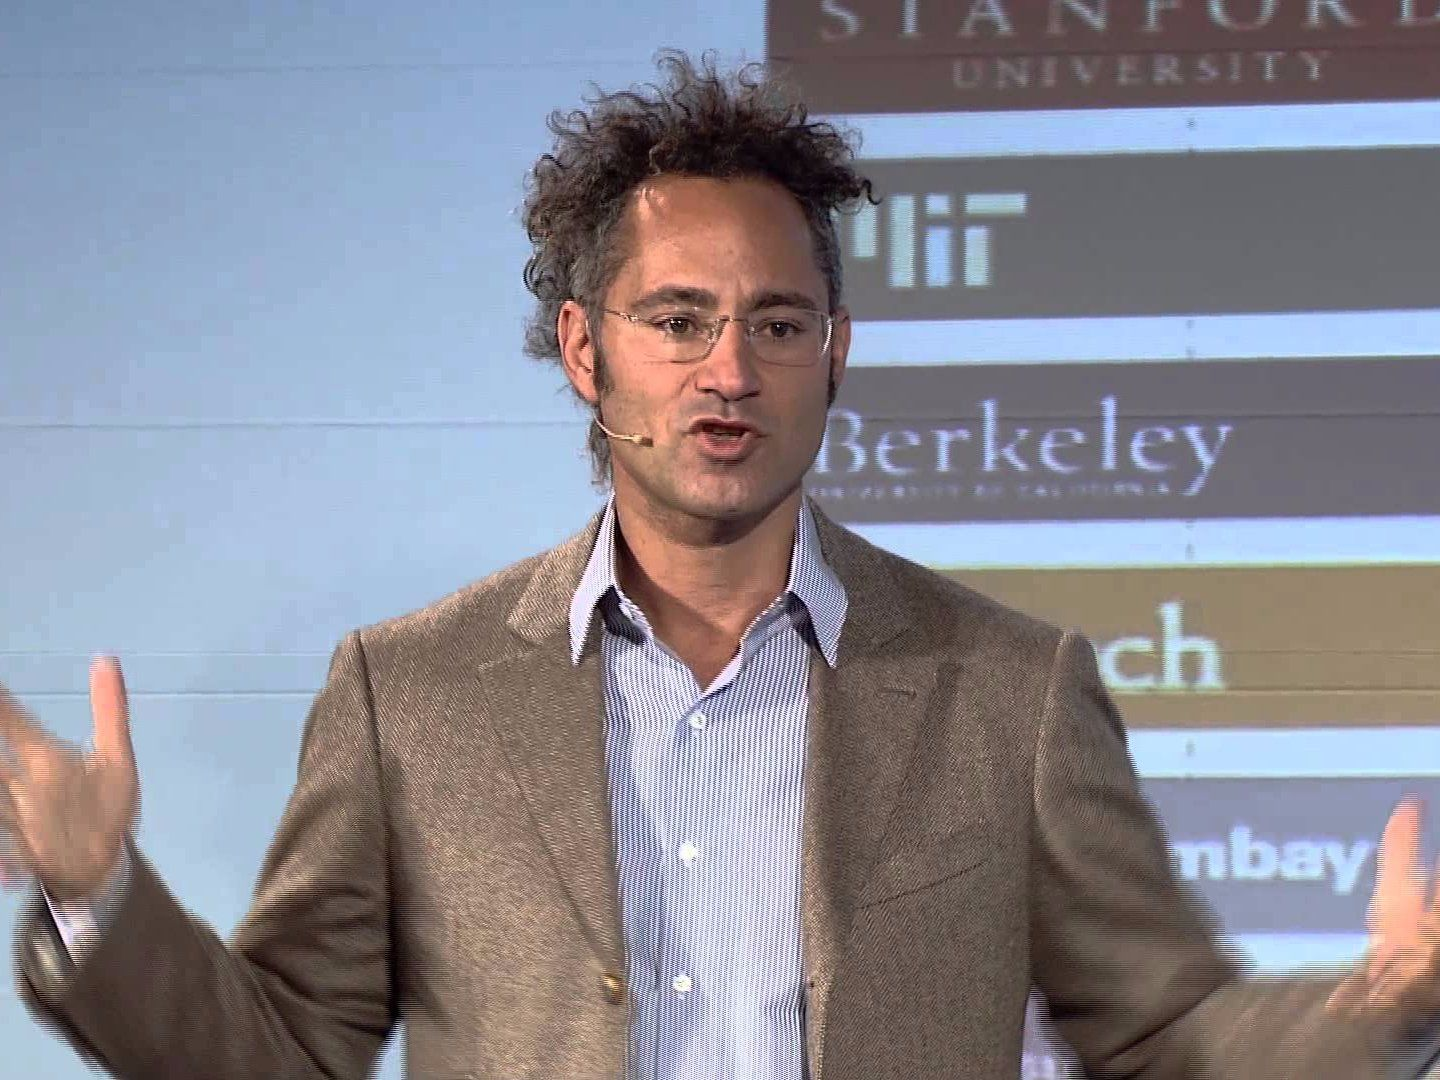 Palantir will shell out $1.7 million to settle claims that it discriminated against Asian engineers